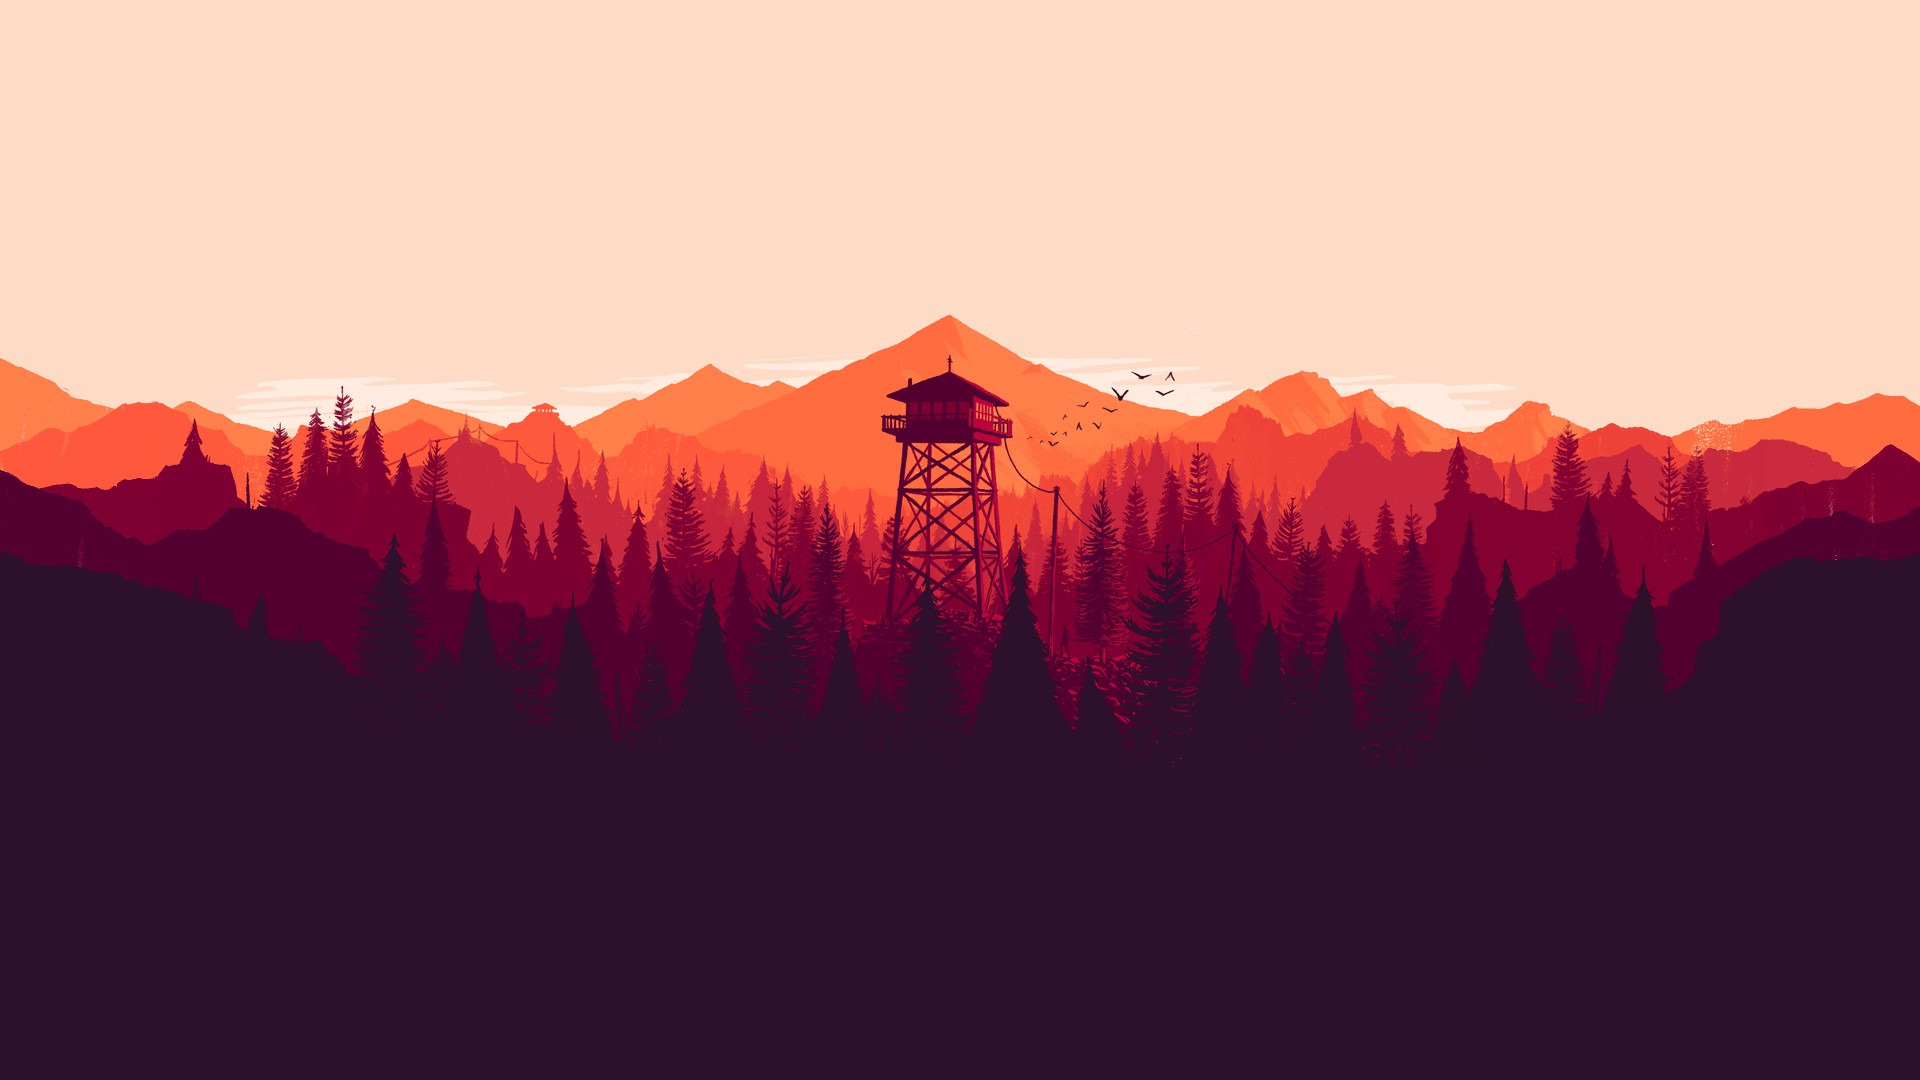 General 1920x1080 video games Firewatch mountains landscape artwork nature forest tower Olly Moss illustration digital art 2016 (Year)